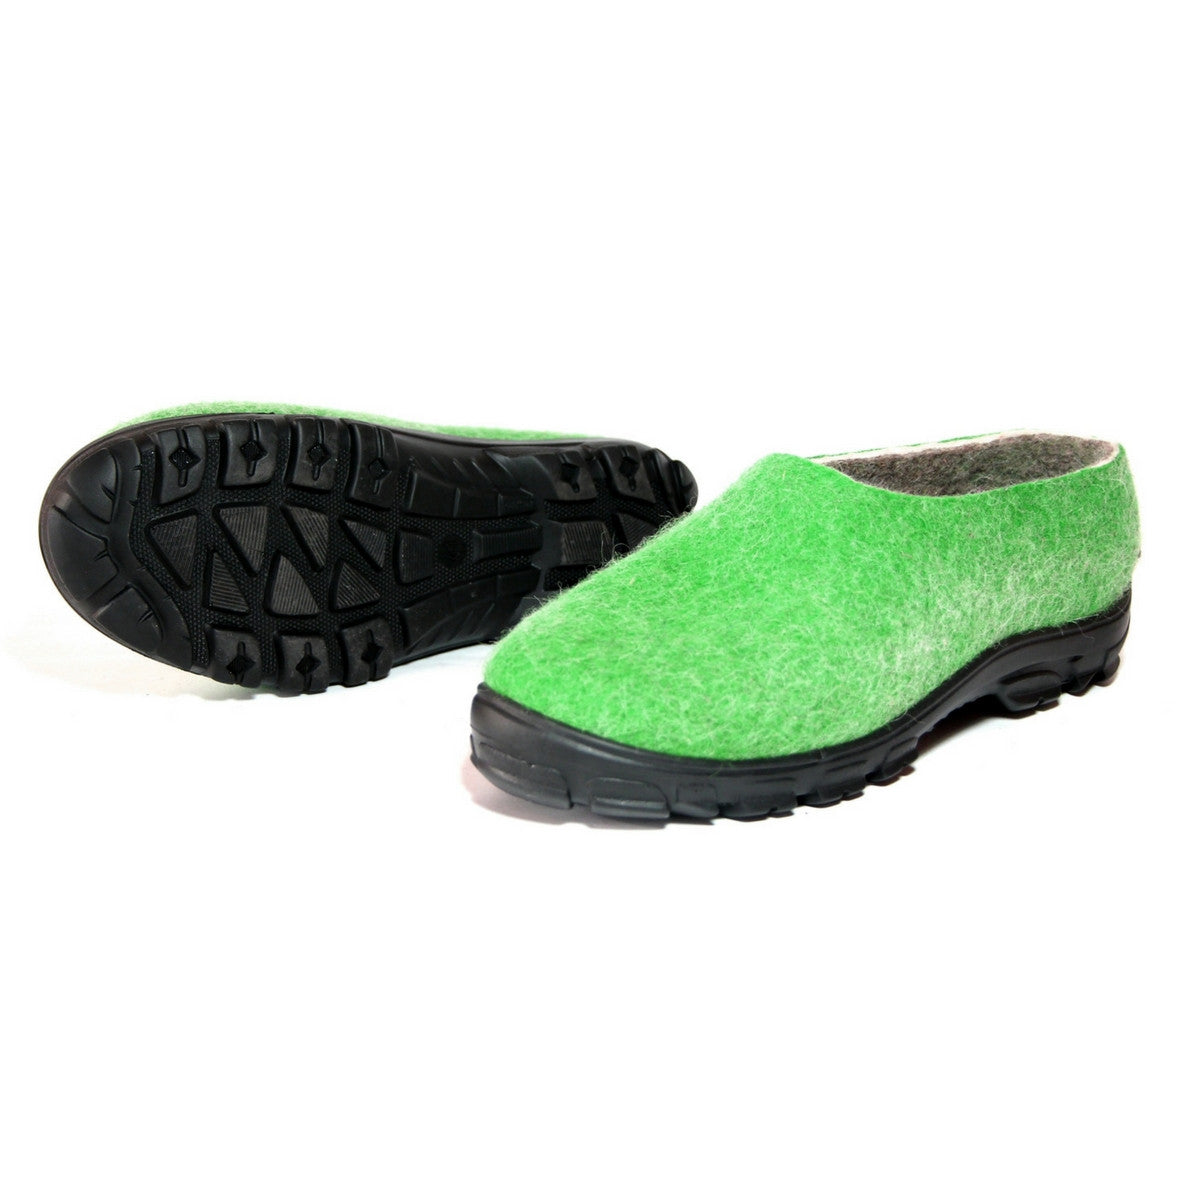 Men's Wool Sneakers Green Grey